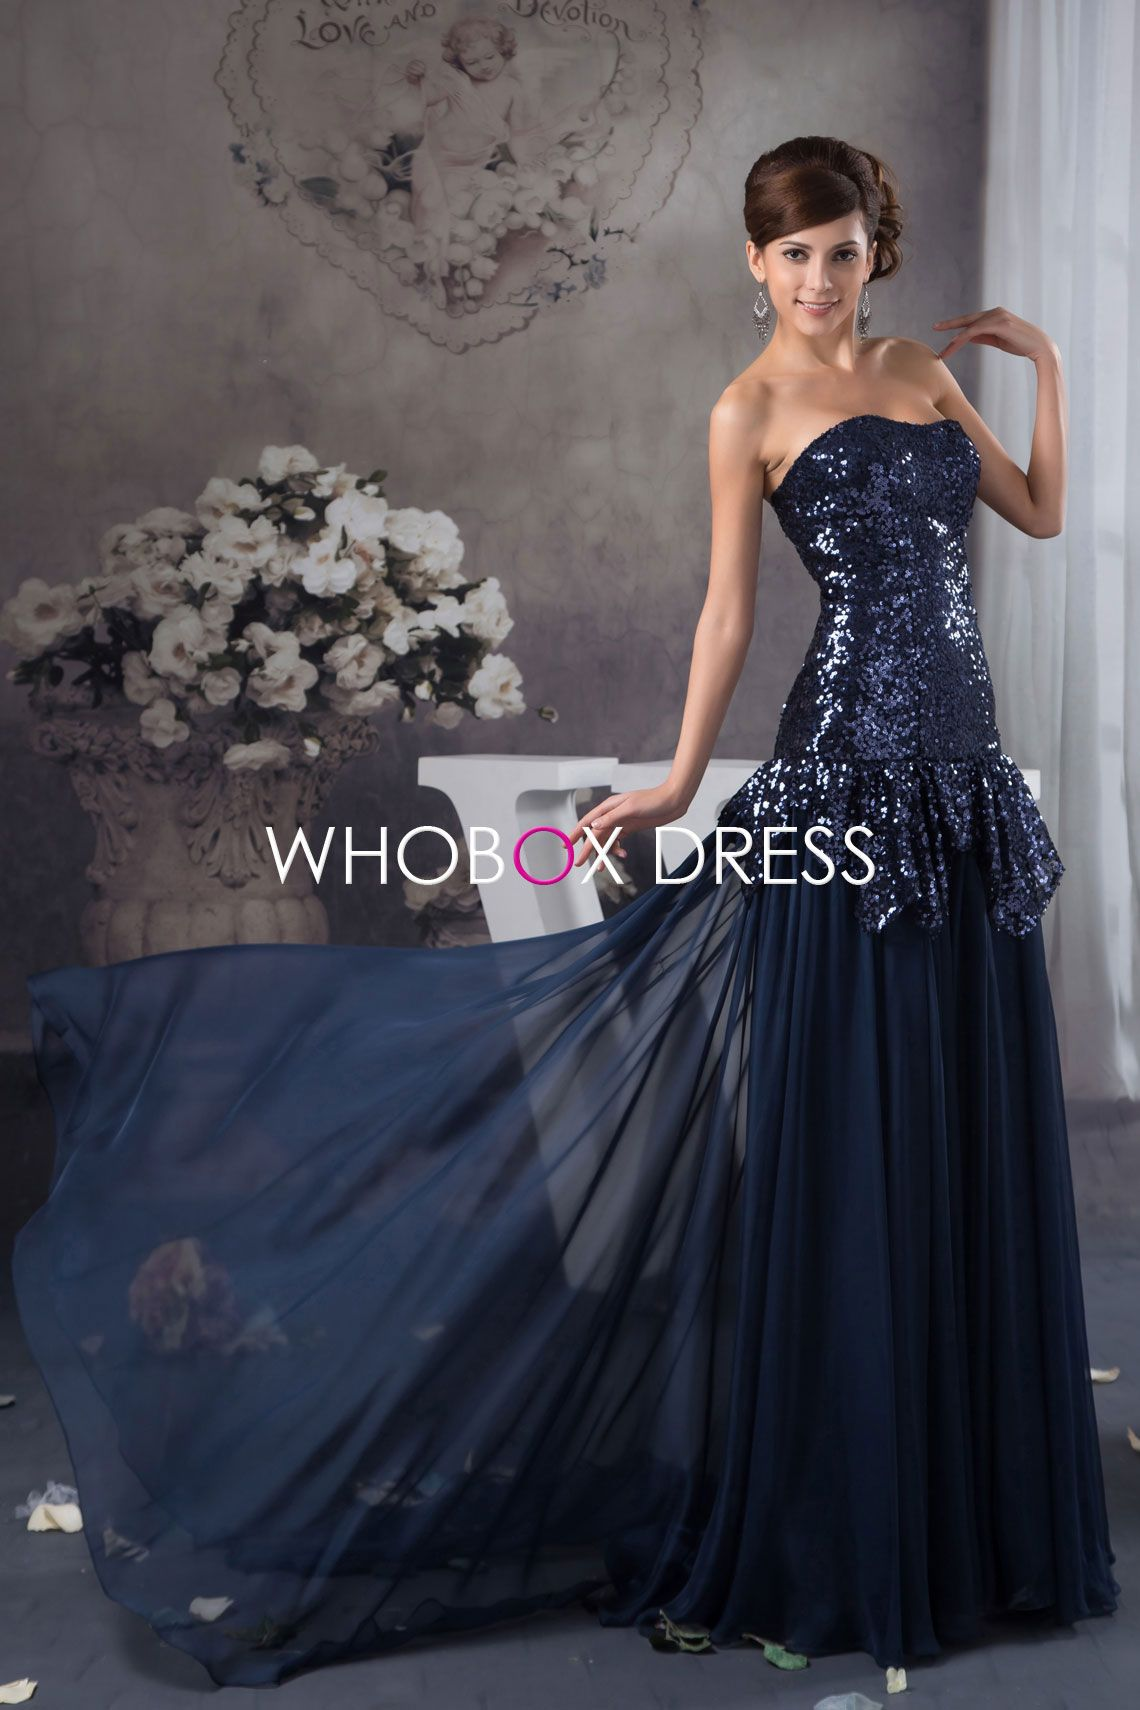 Evening gown evening gowns want it pinterest gowns sequins